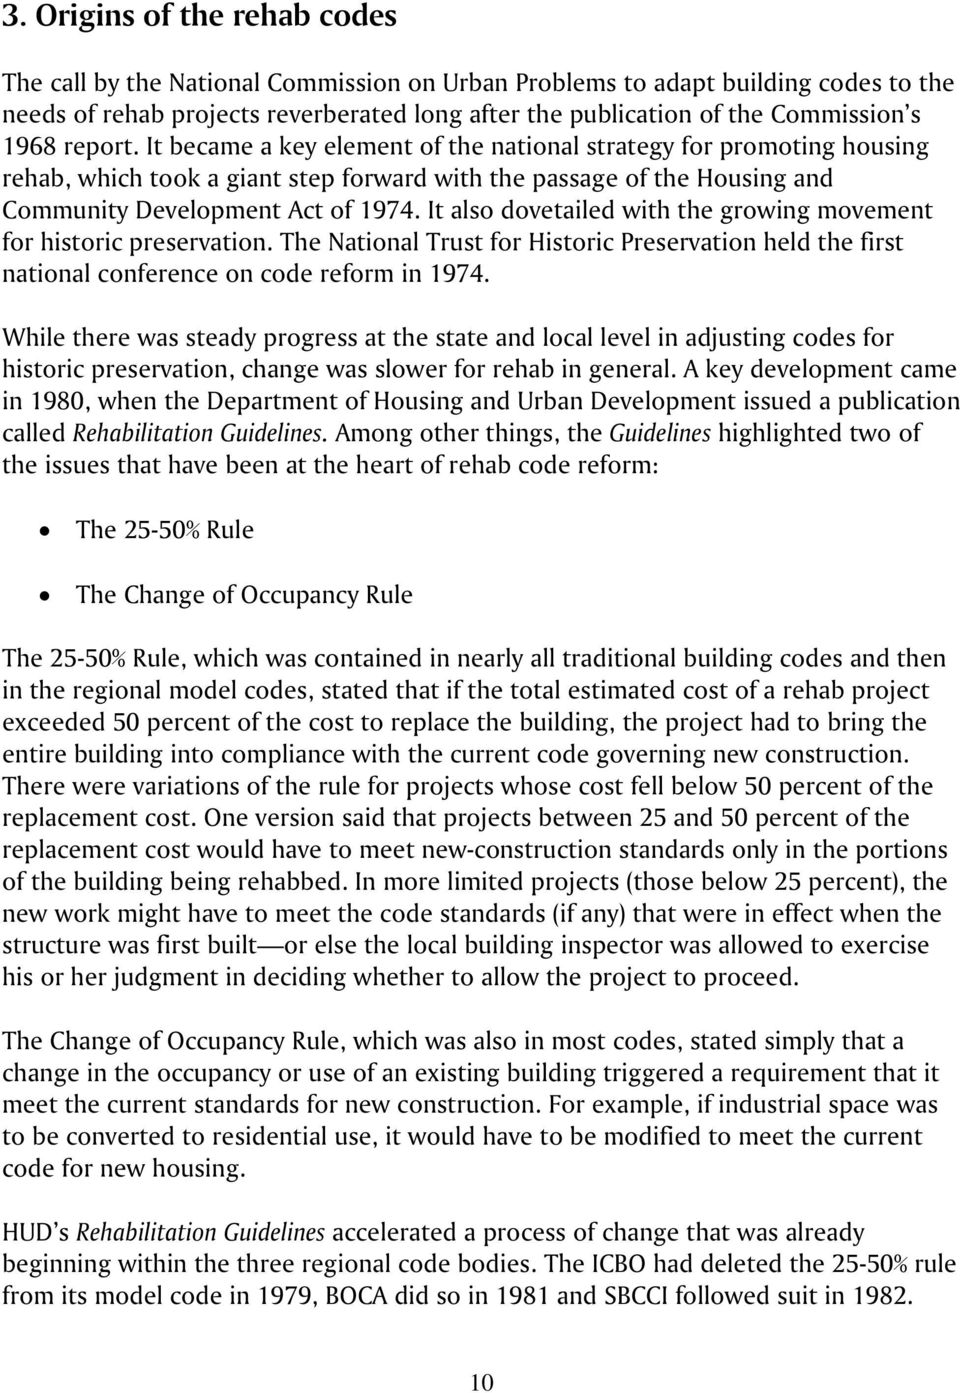 It also dovetailed with the growing movement for historic preservation. The National Trust for Historic Preservation held the first national conference on code reform in 1974.